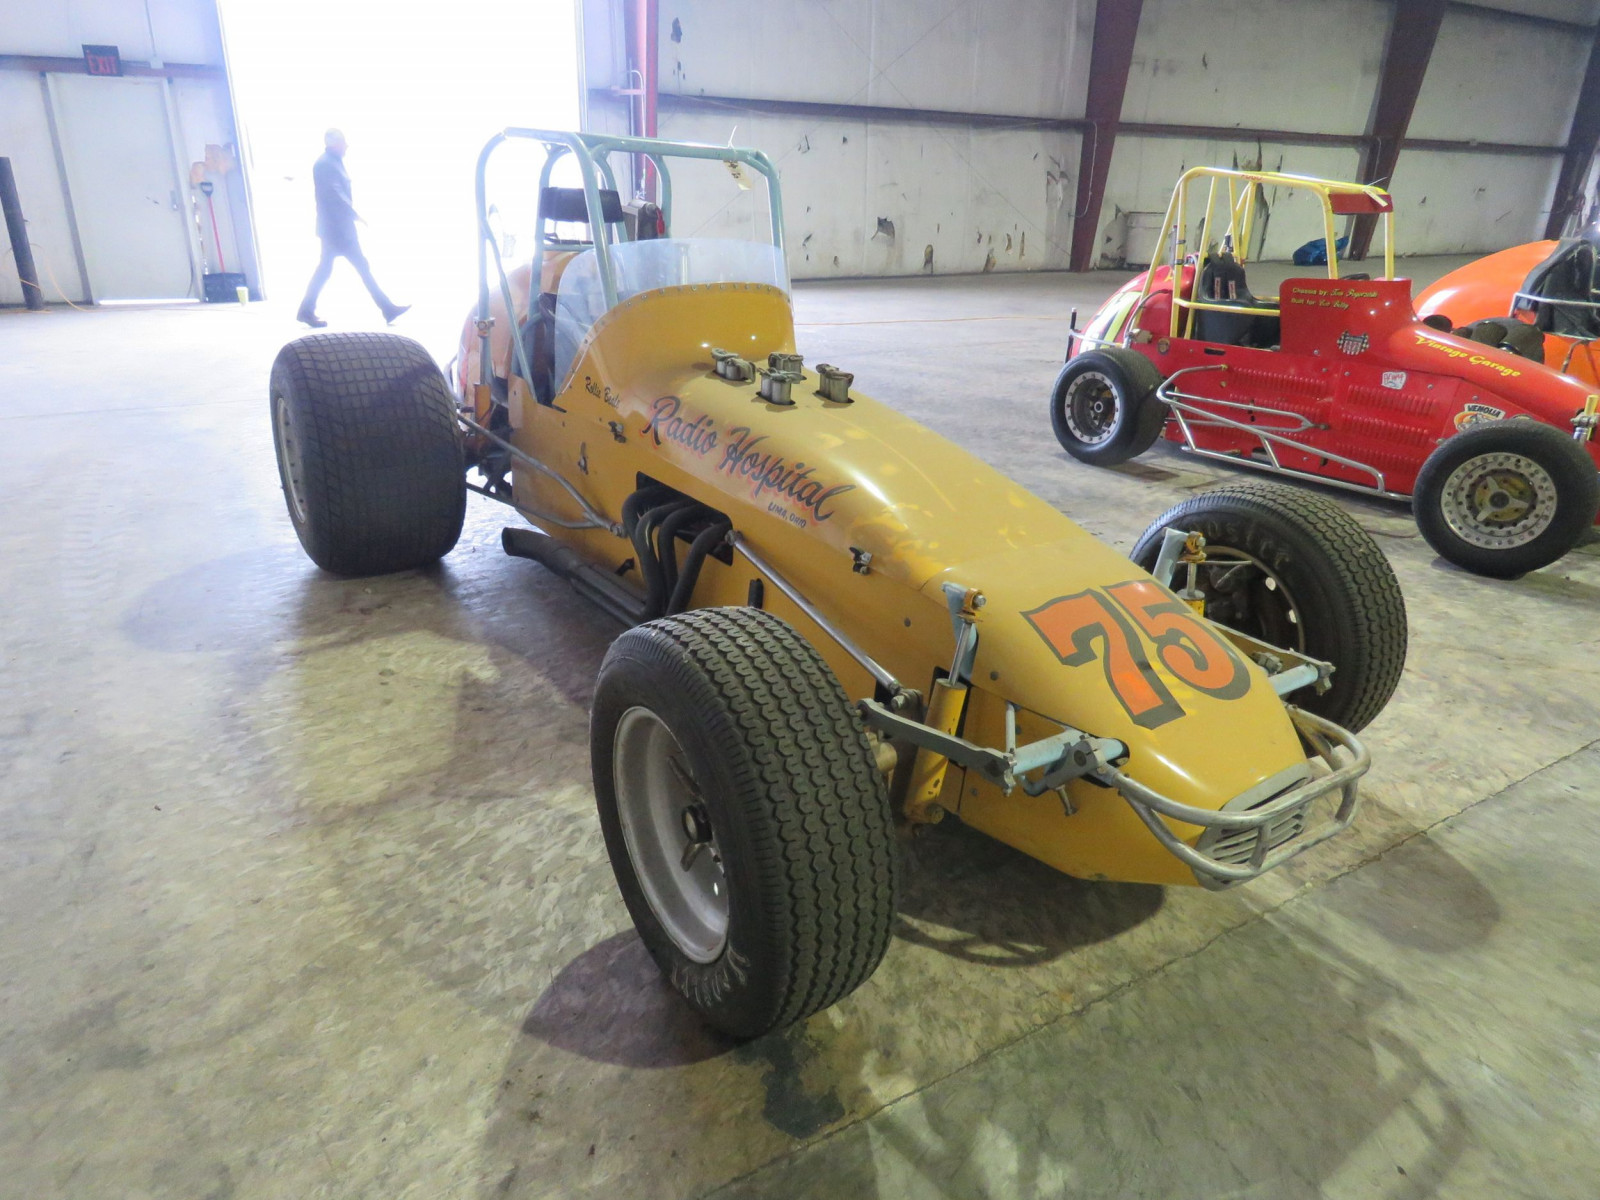 1972 fuel Injected Sprint Car - Image 3